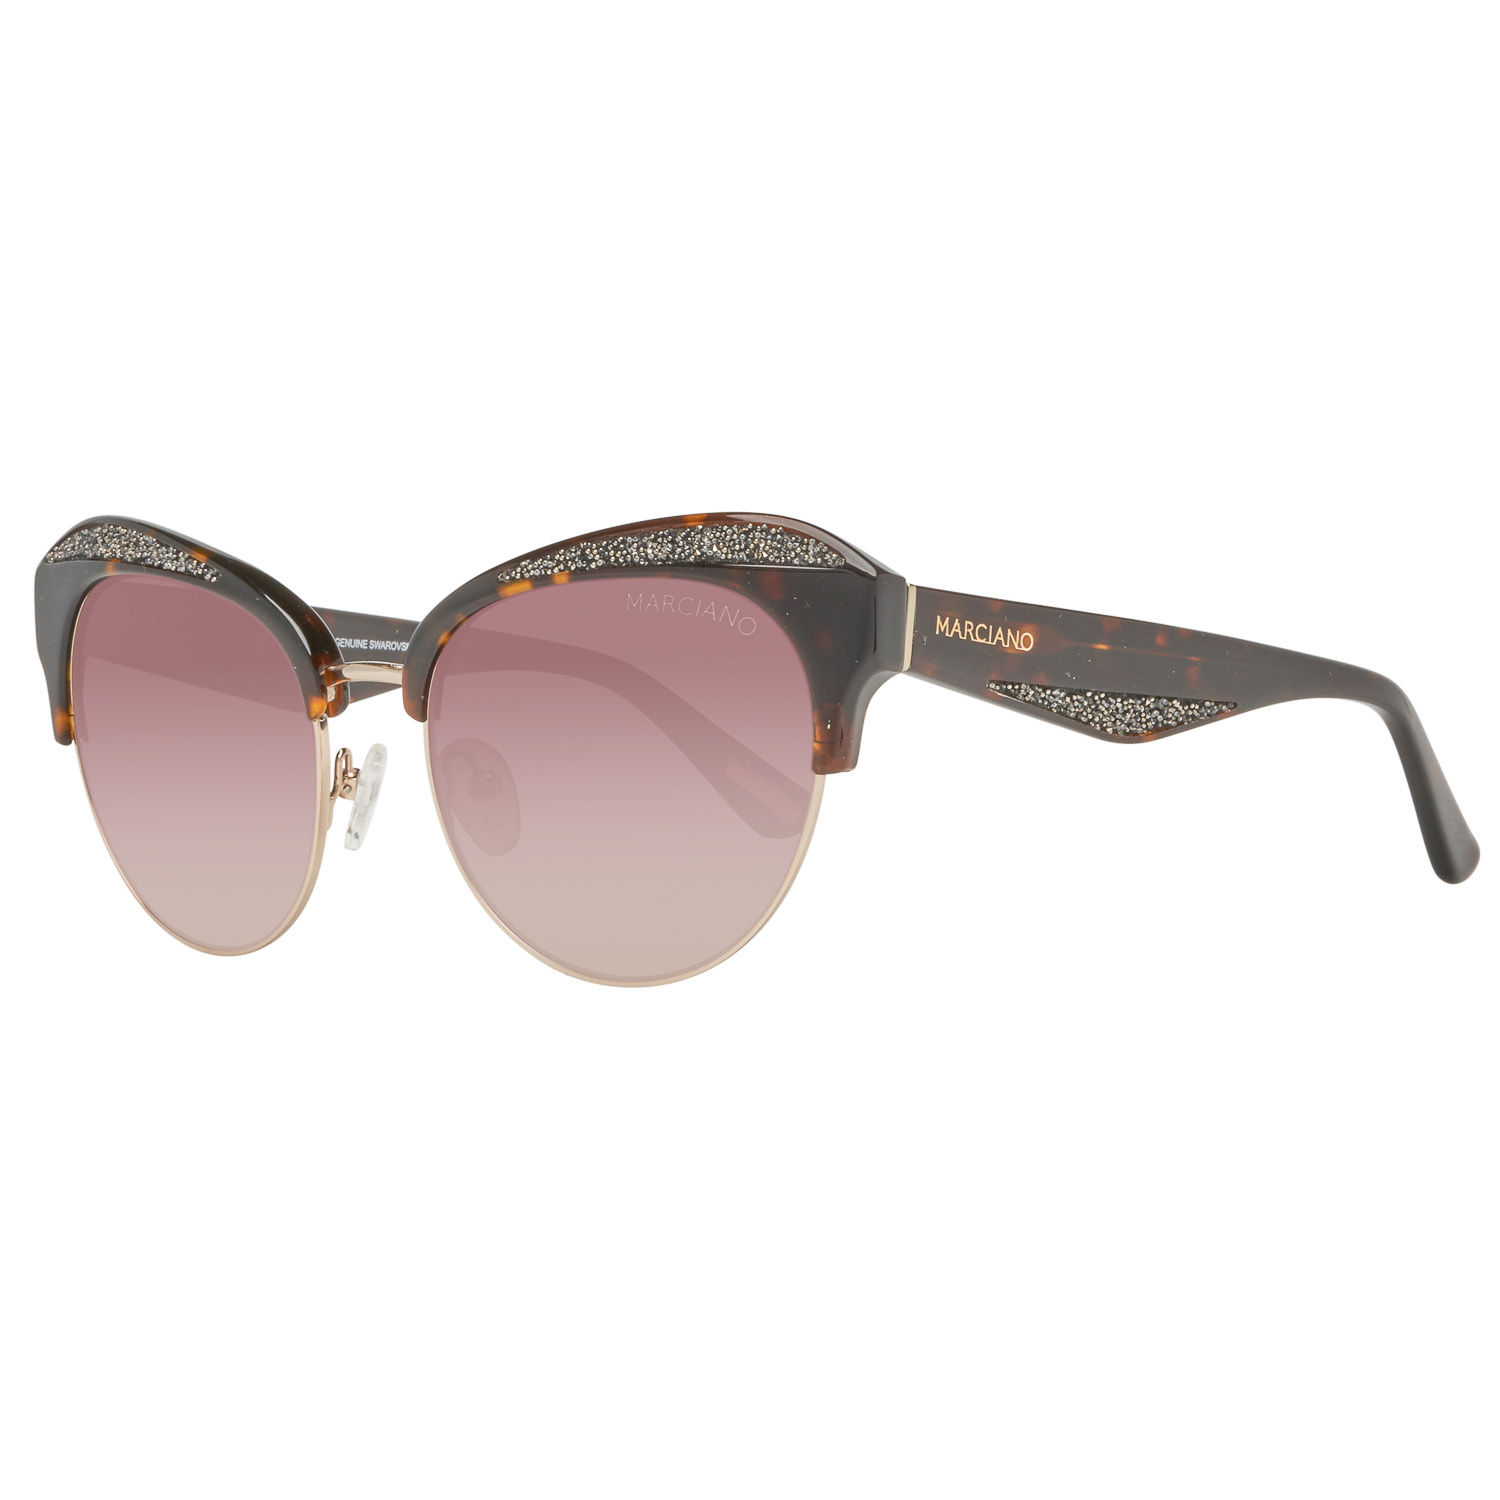 Guess by Marciano Sunglasses GM0777 52F 55 Brown